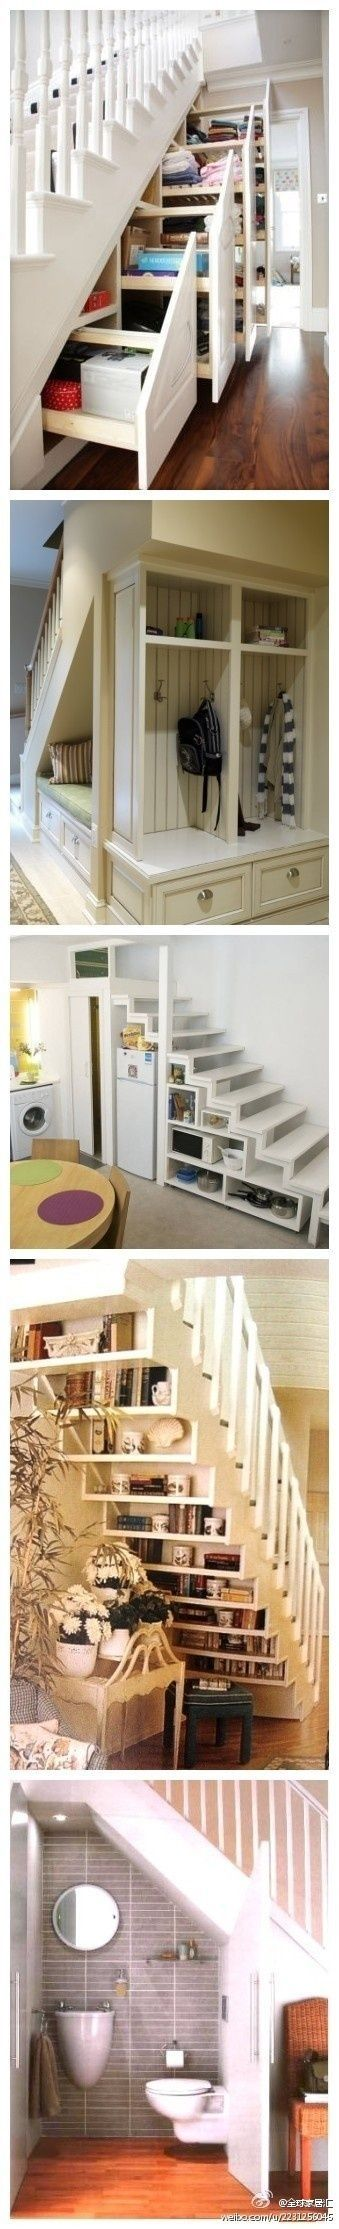 """Love the idea of the built in bed area and """"closet""""...would add a great deal of seating space to front part of basement! by AislingH"""